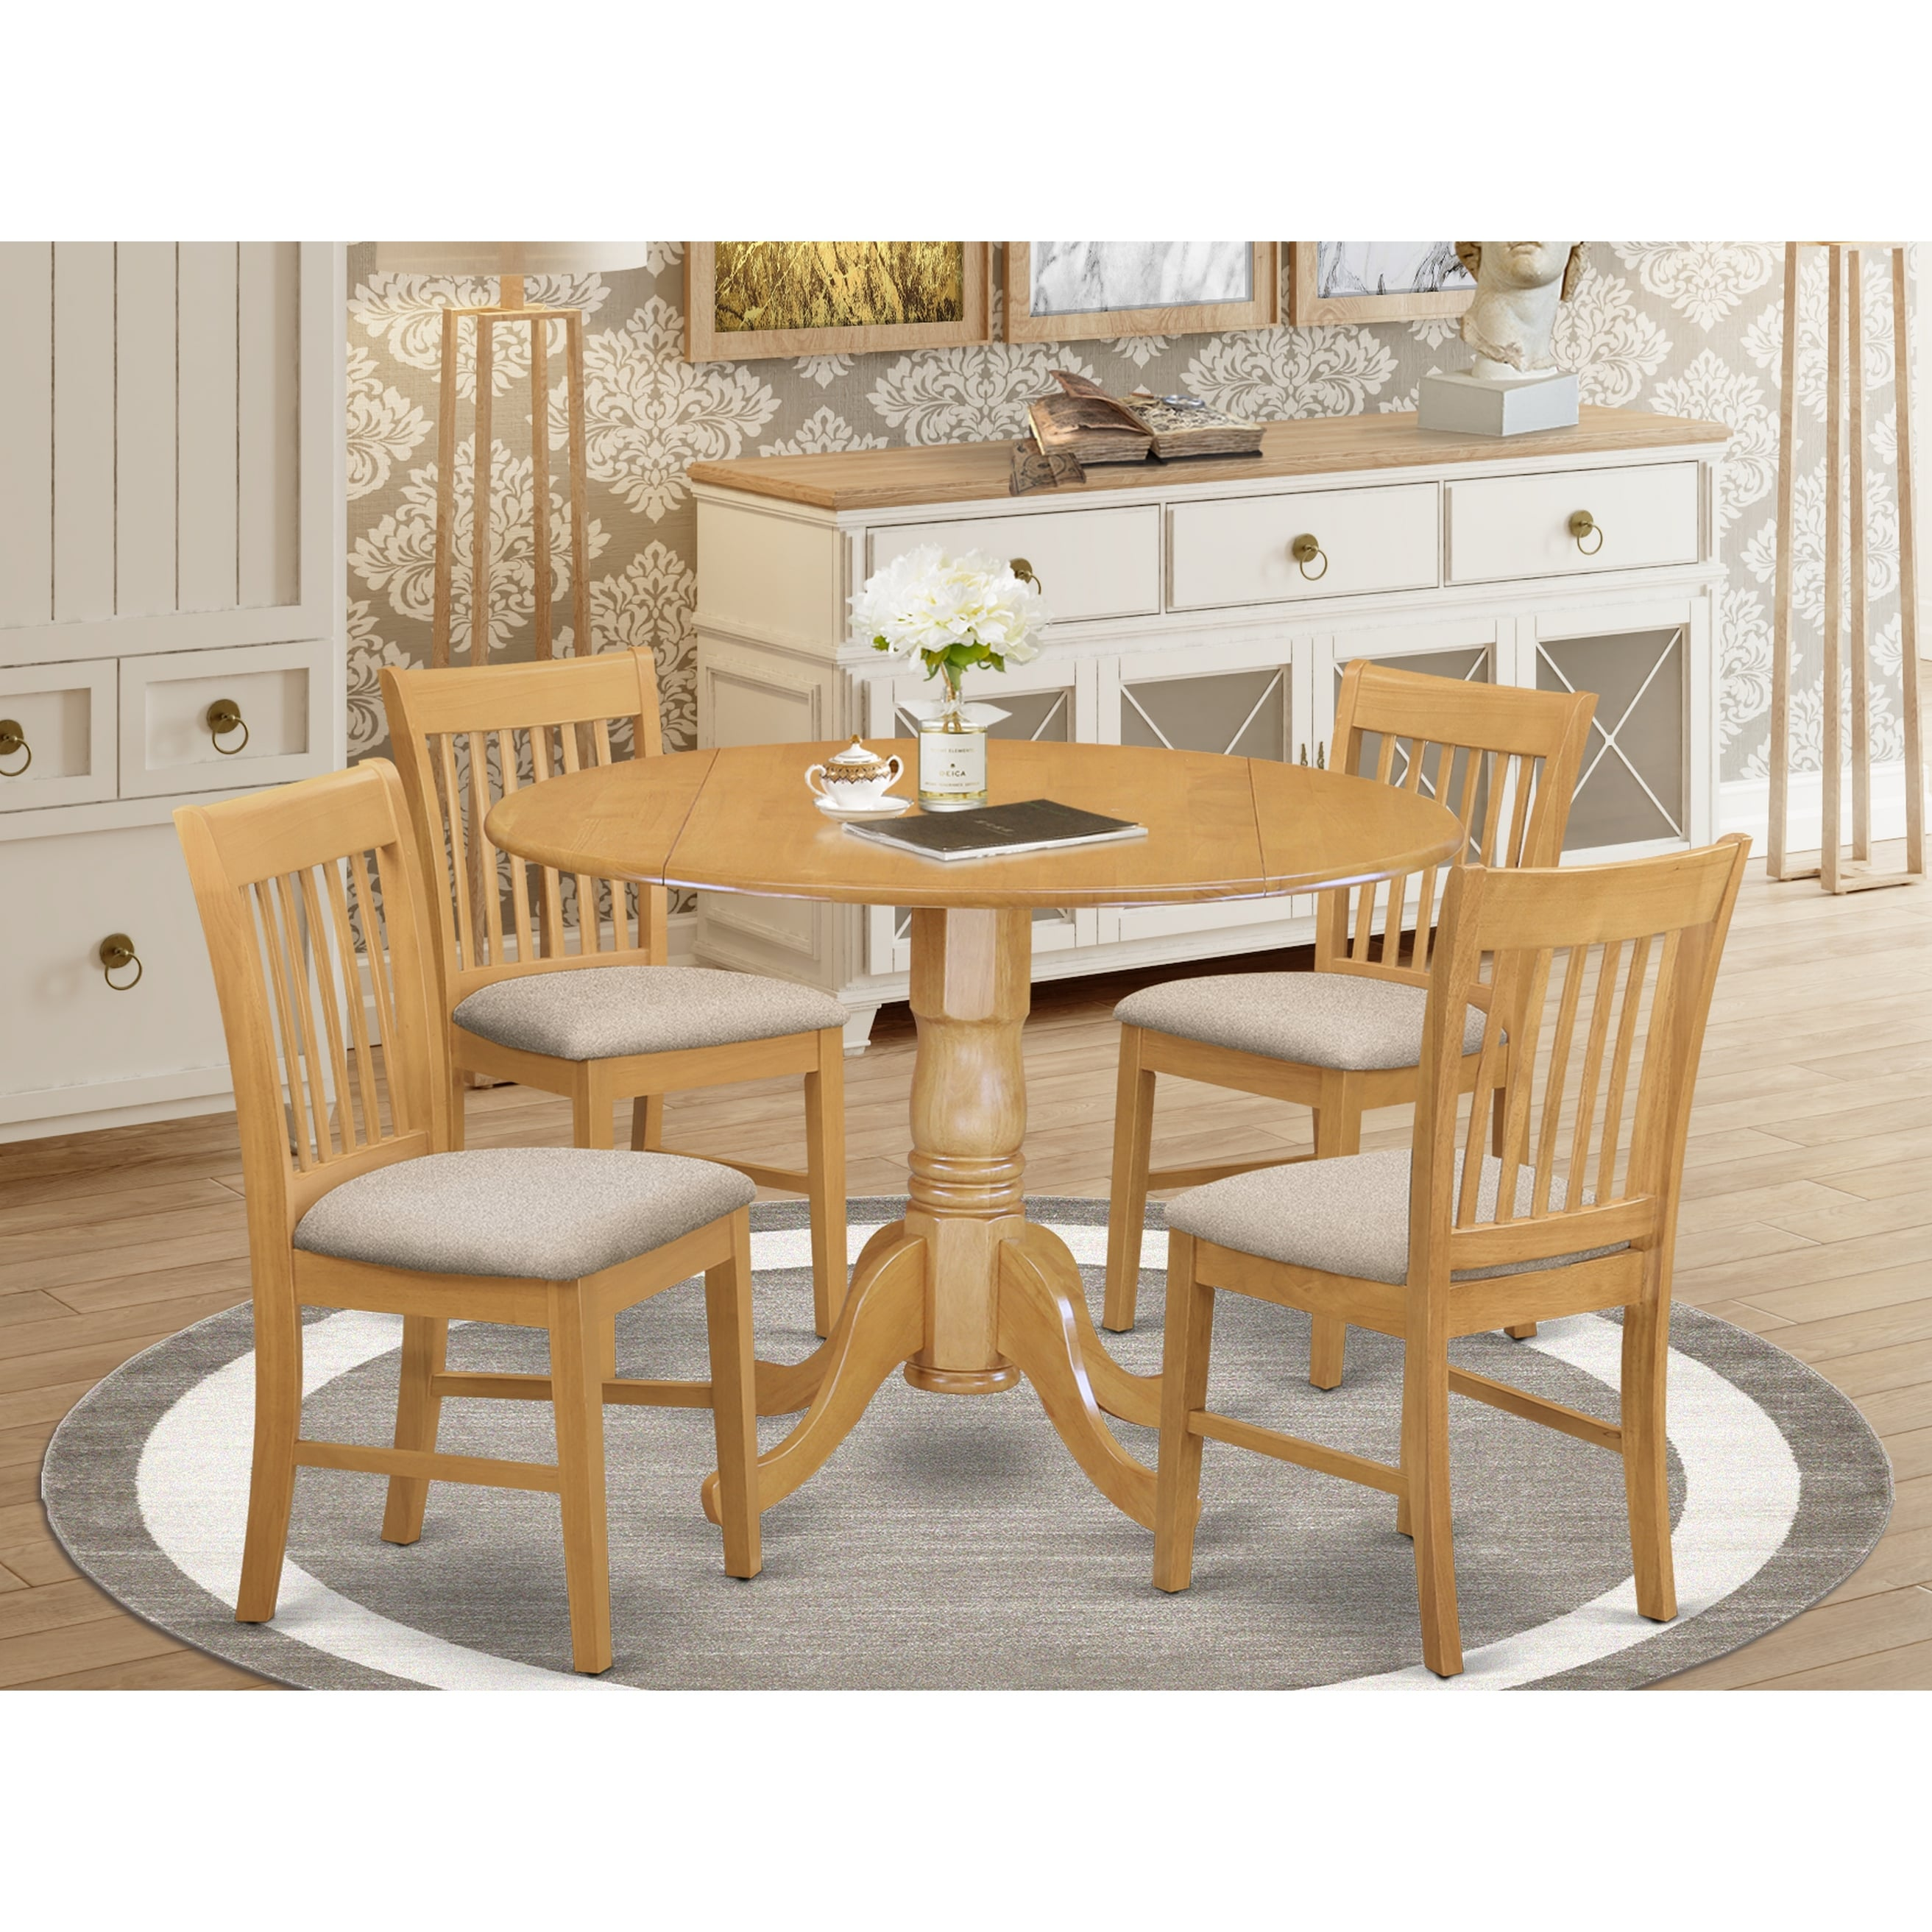 Oak Round Kitchen Table And 4 Chairs 5 Piece Dining Set Overstock 10201193